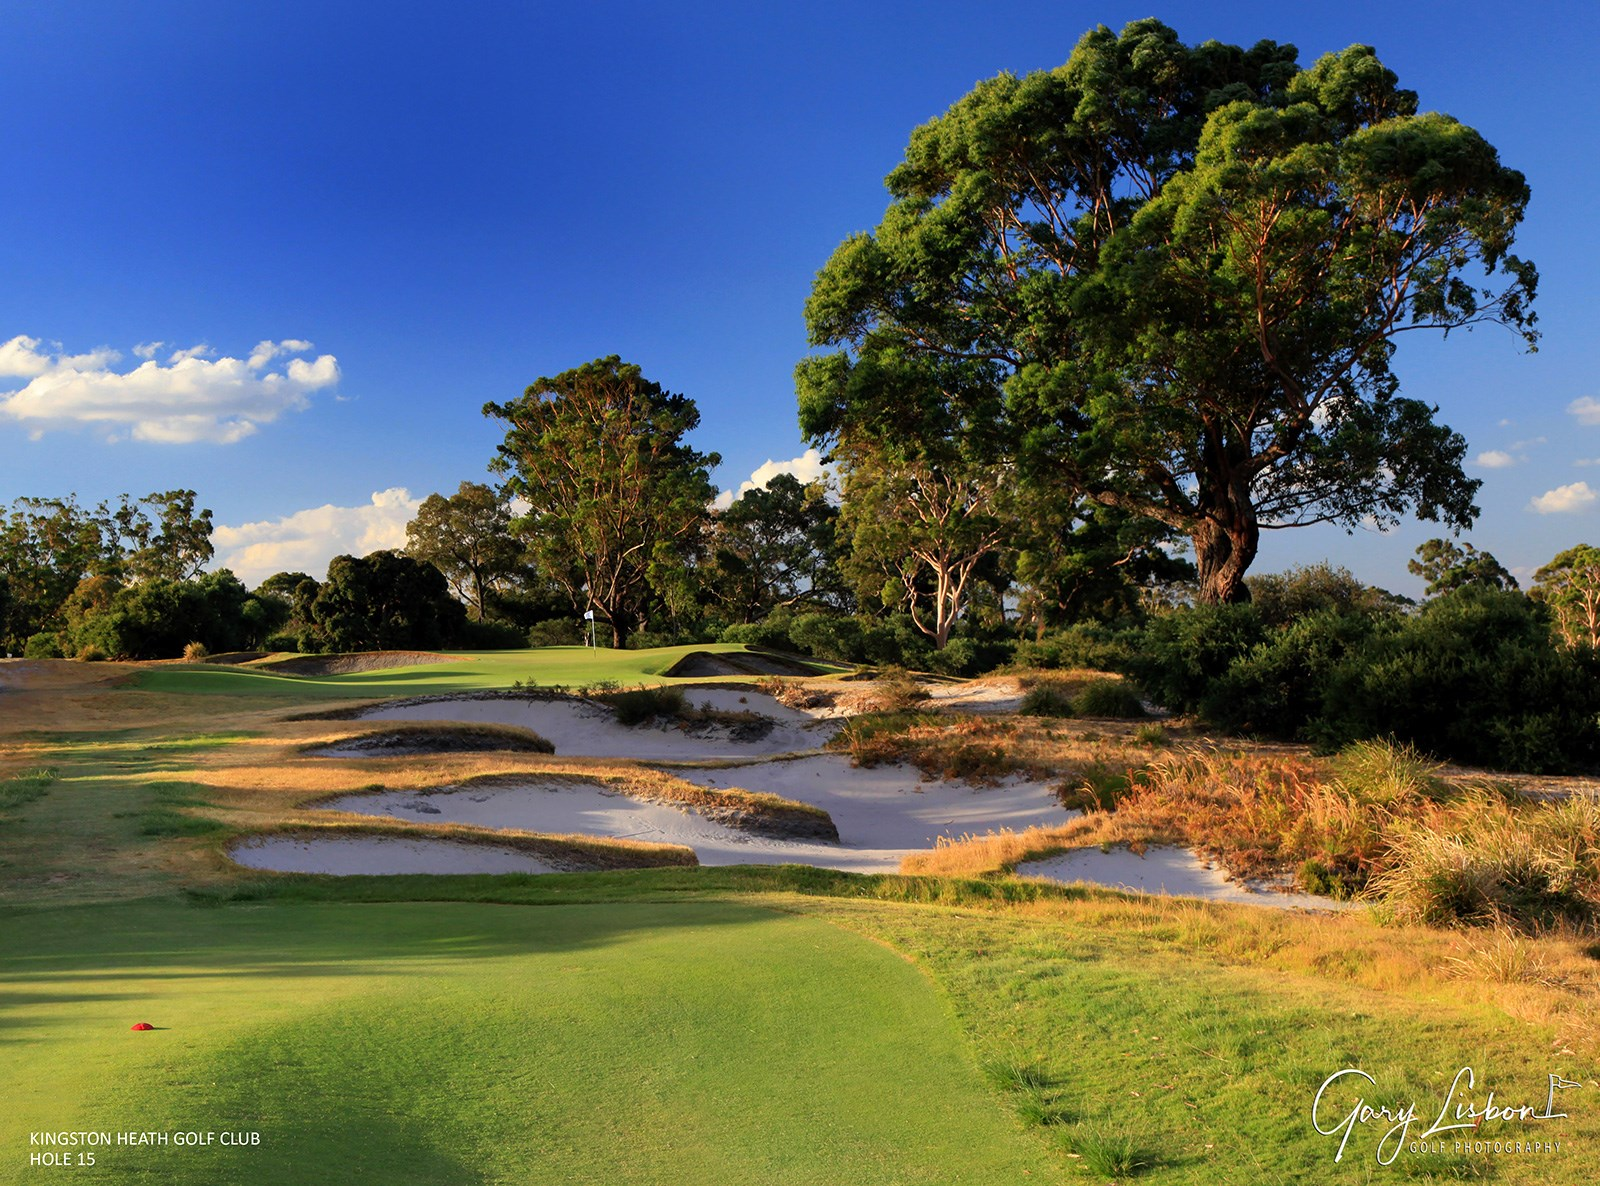 Kingston Heath Golf Club Hole 15